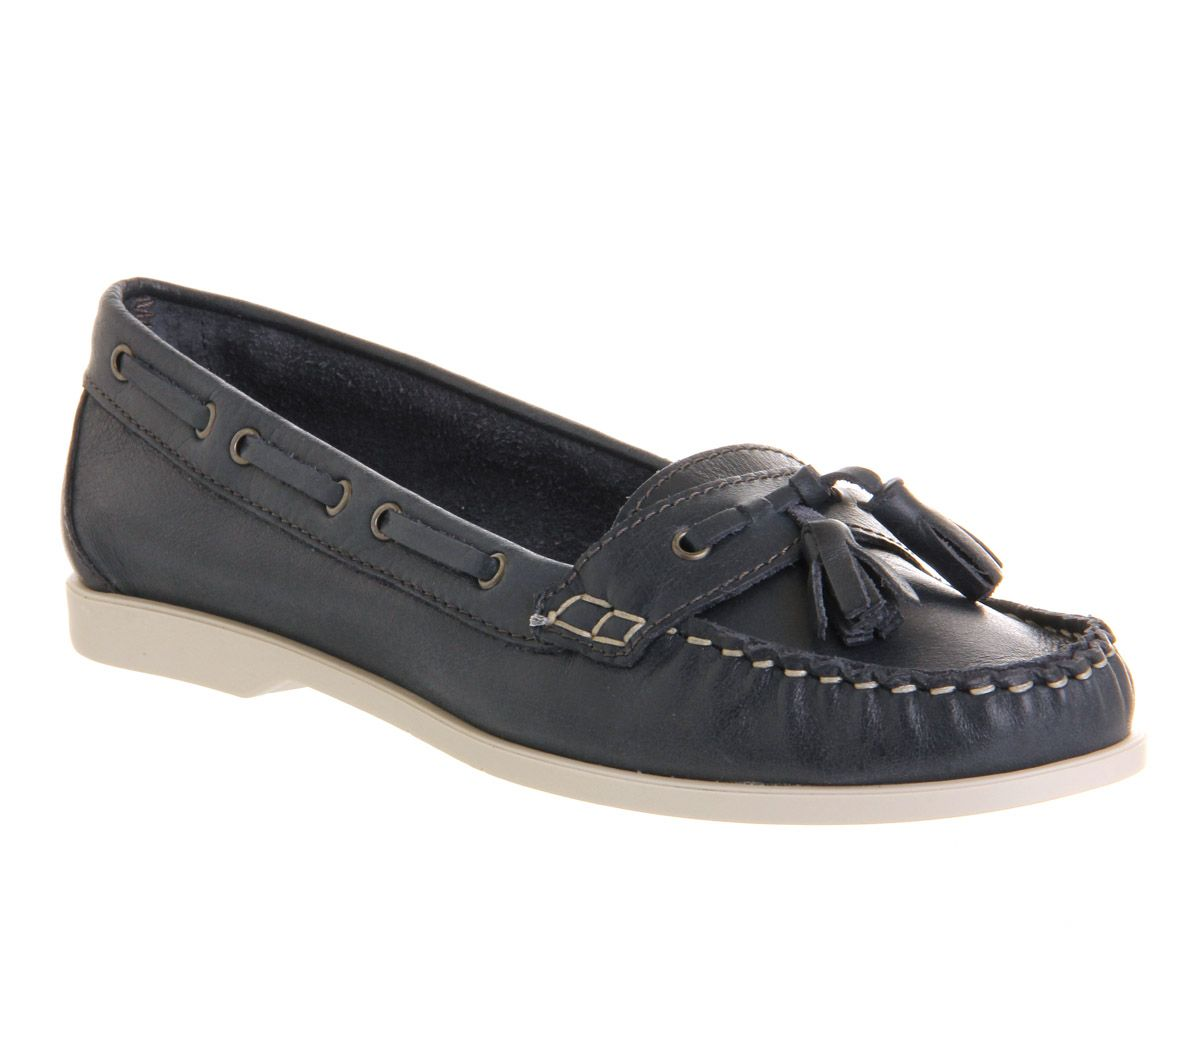 Pacific loafers